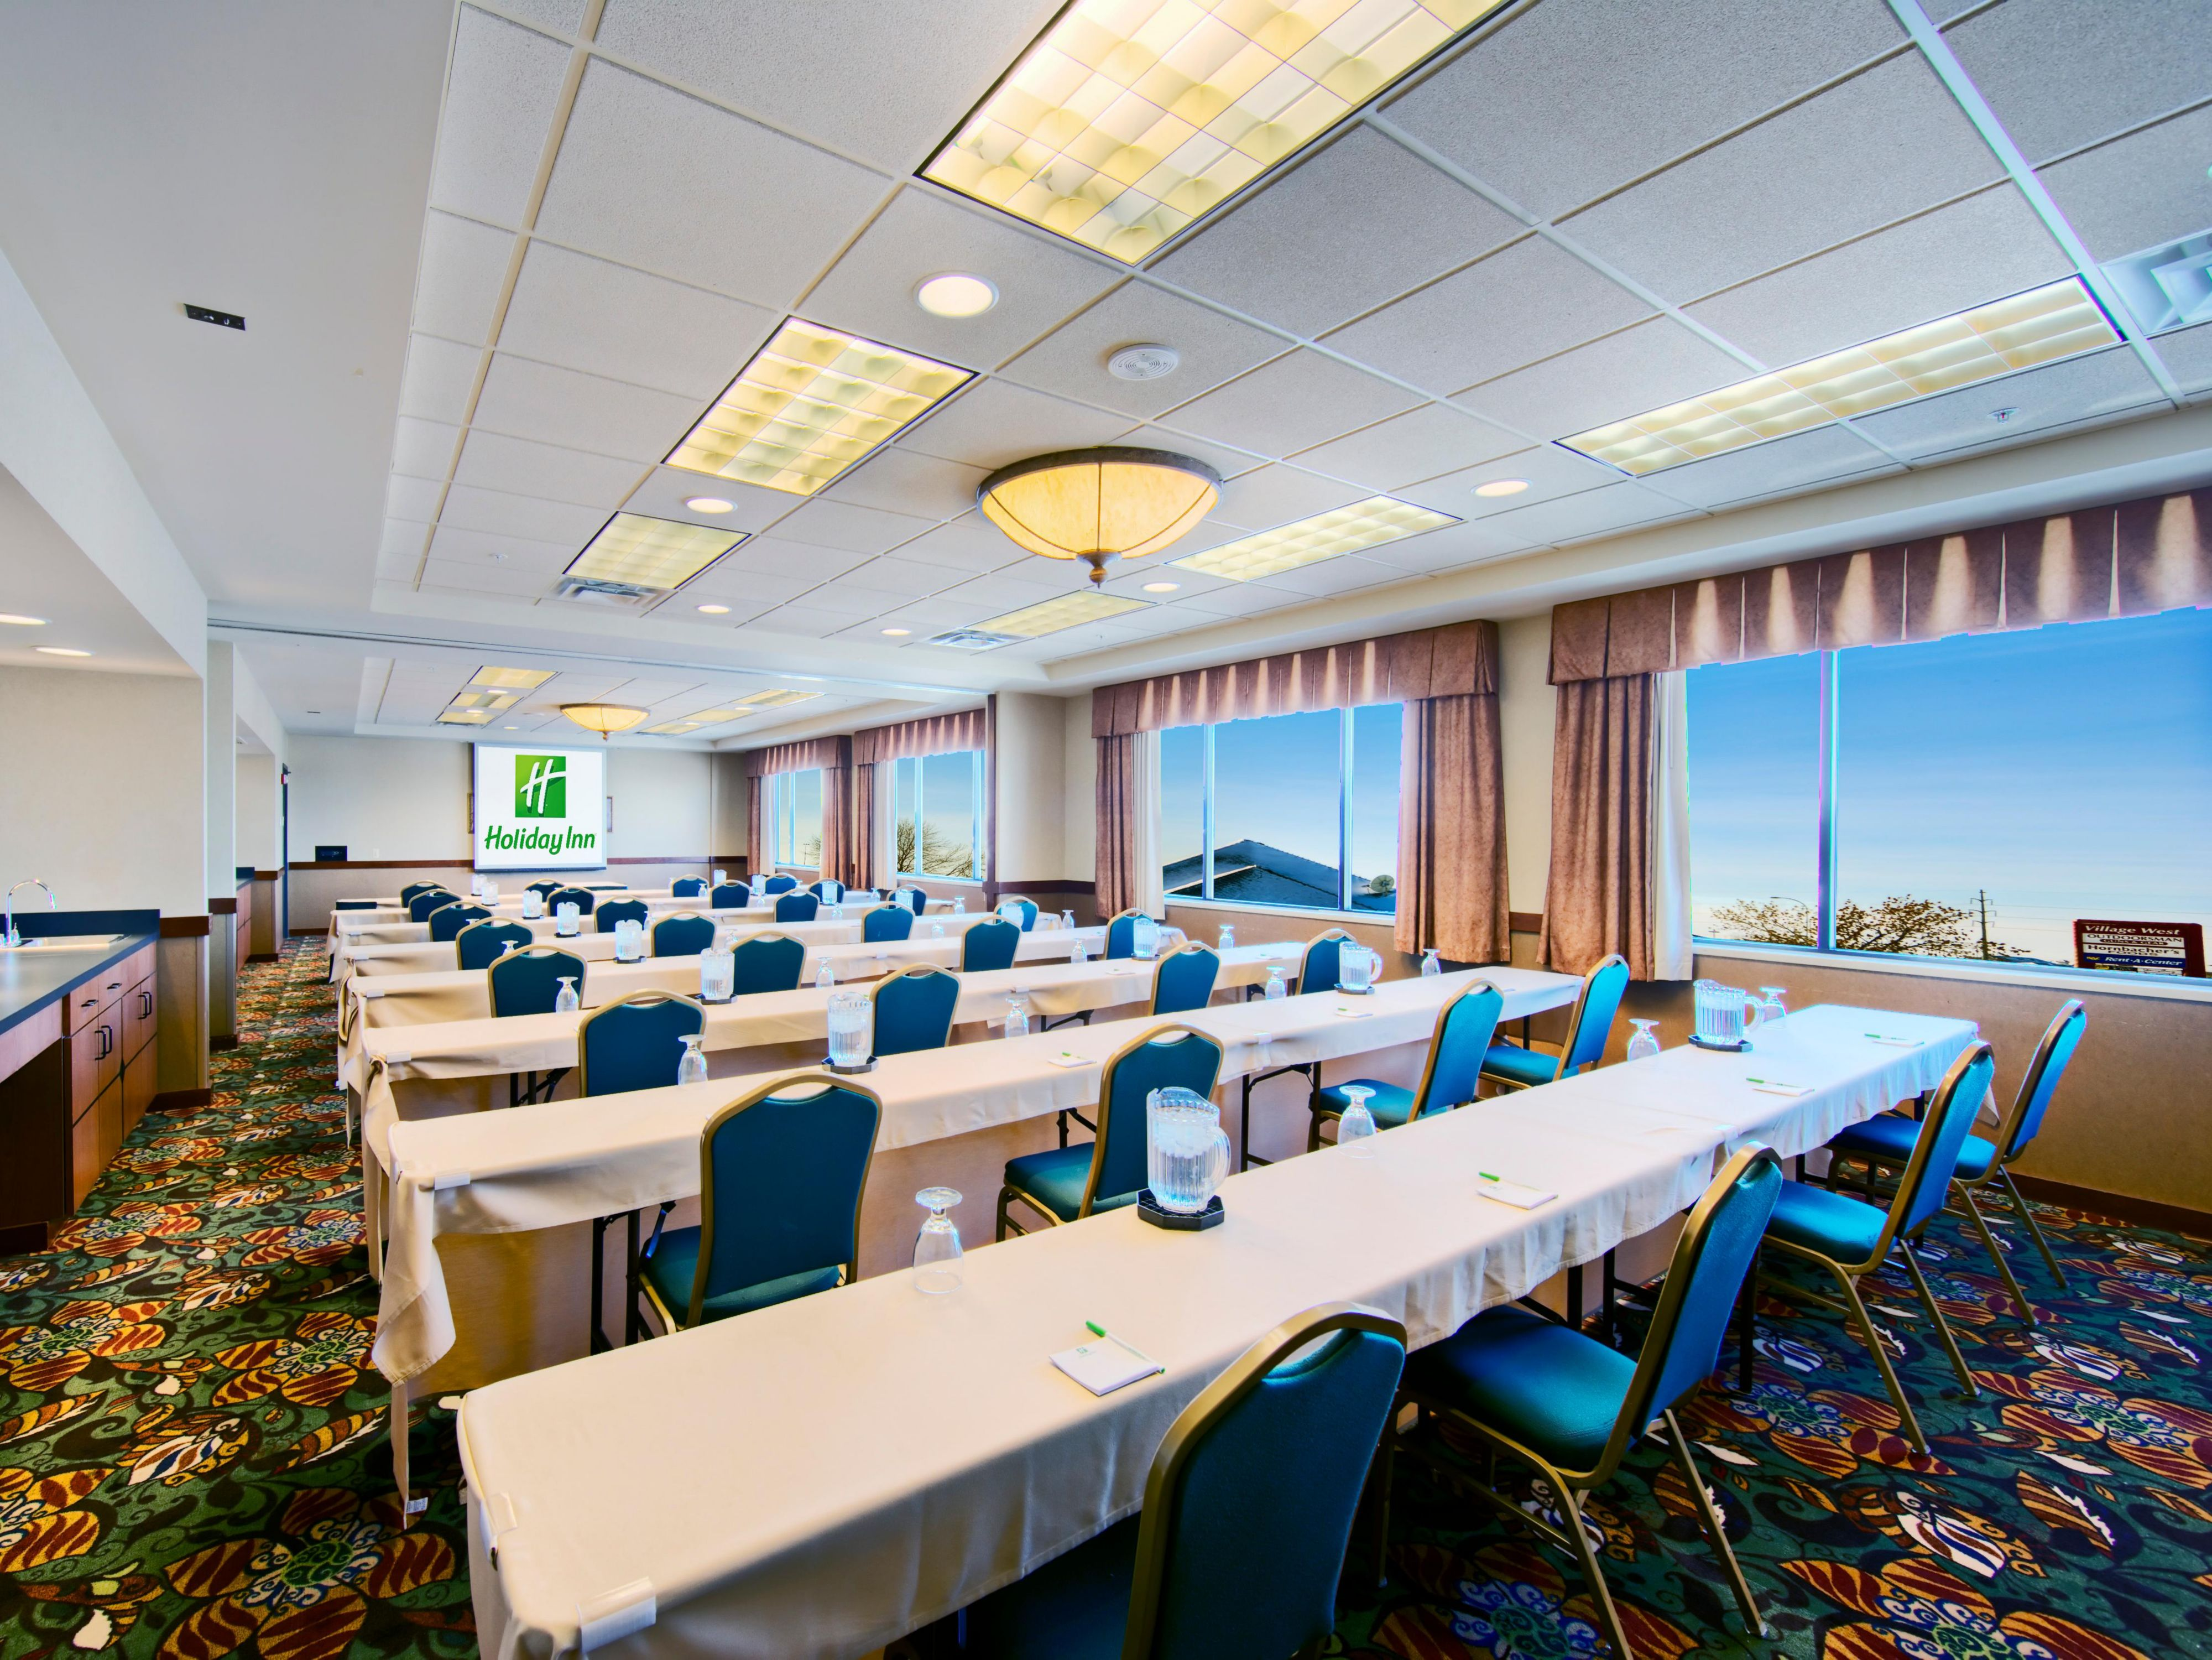 Great meeting space for your company.